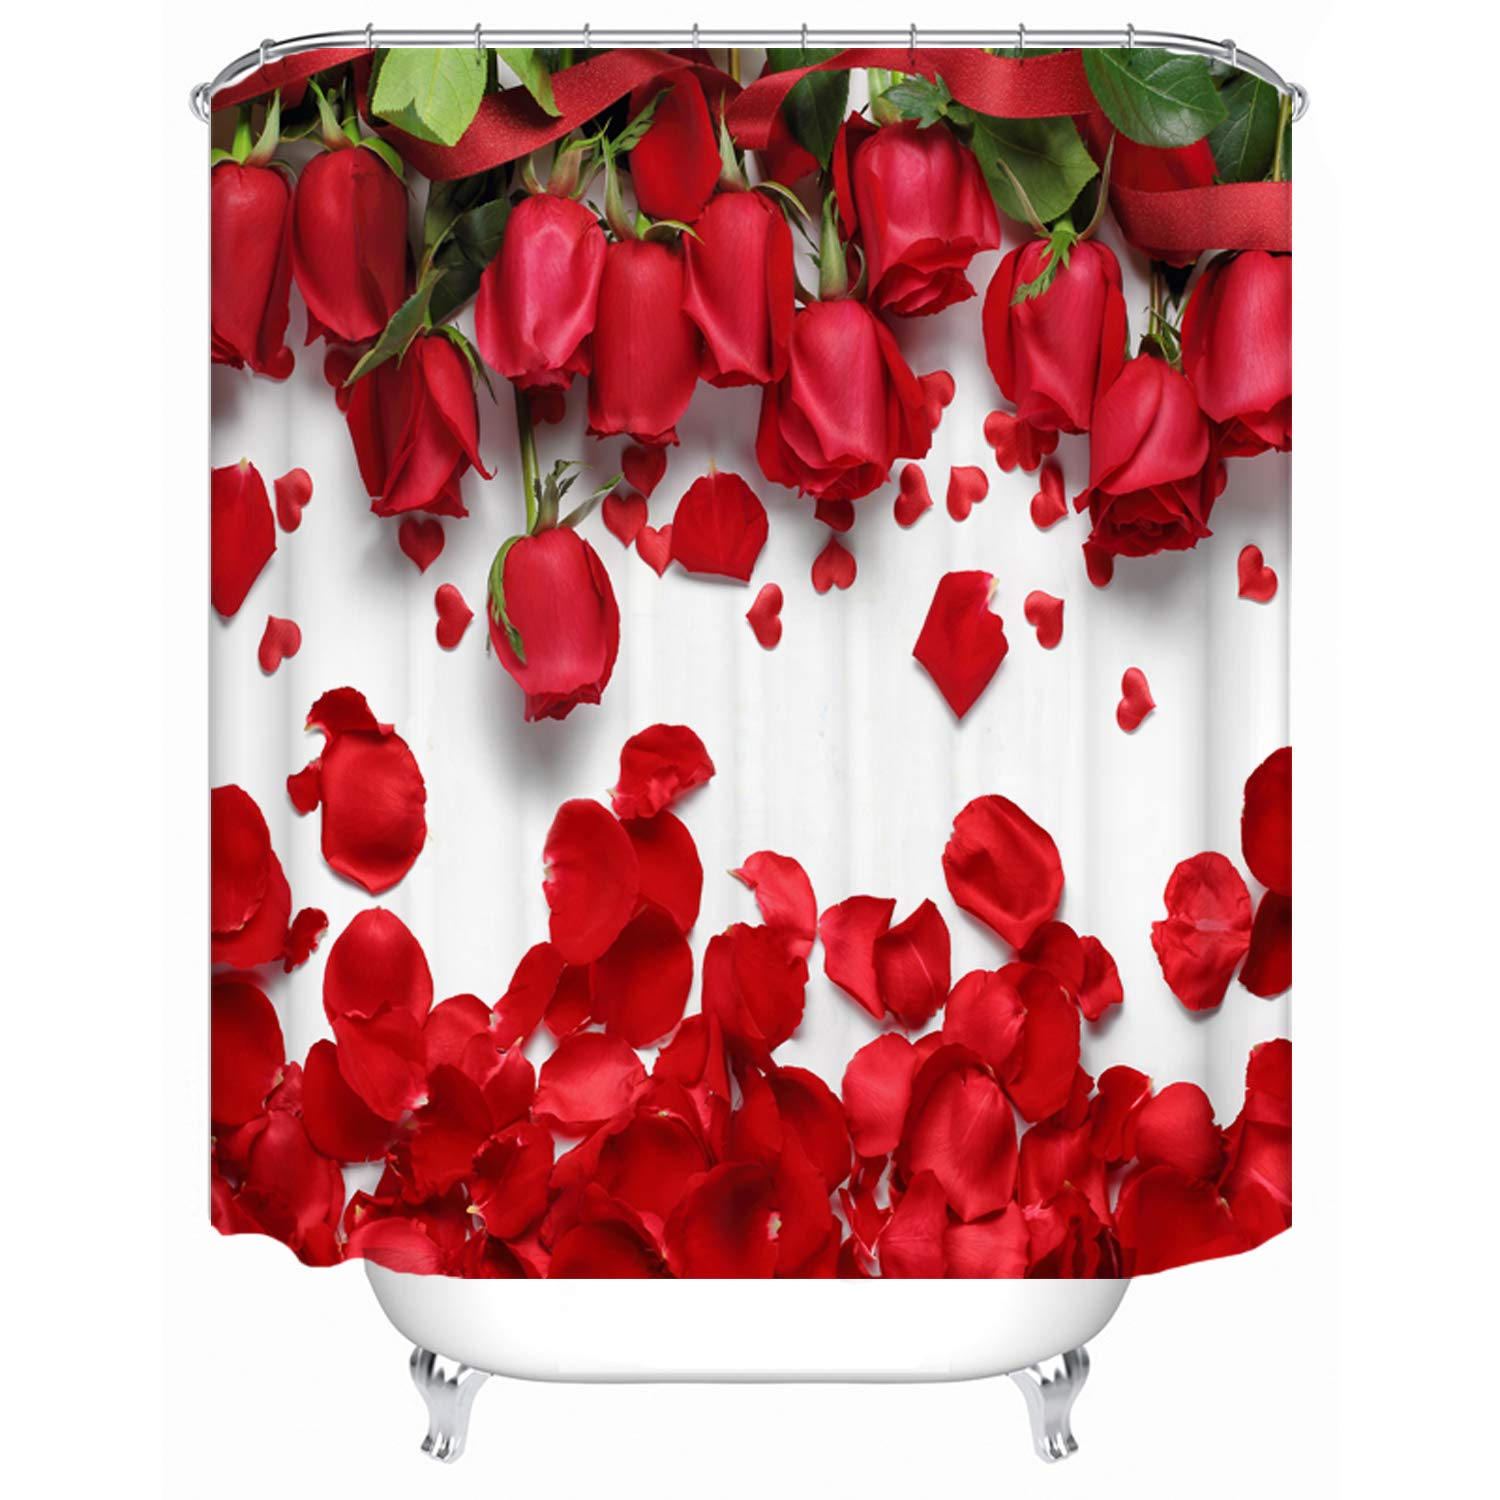 Red Fire African Woman Print Waterproof Fabric Shower Curtain Liner Covered Bathtub Bathroom Curtains Includes 12 Anti Rust Hooks 71 x 71 Inches